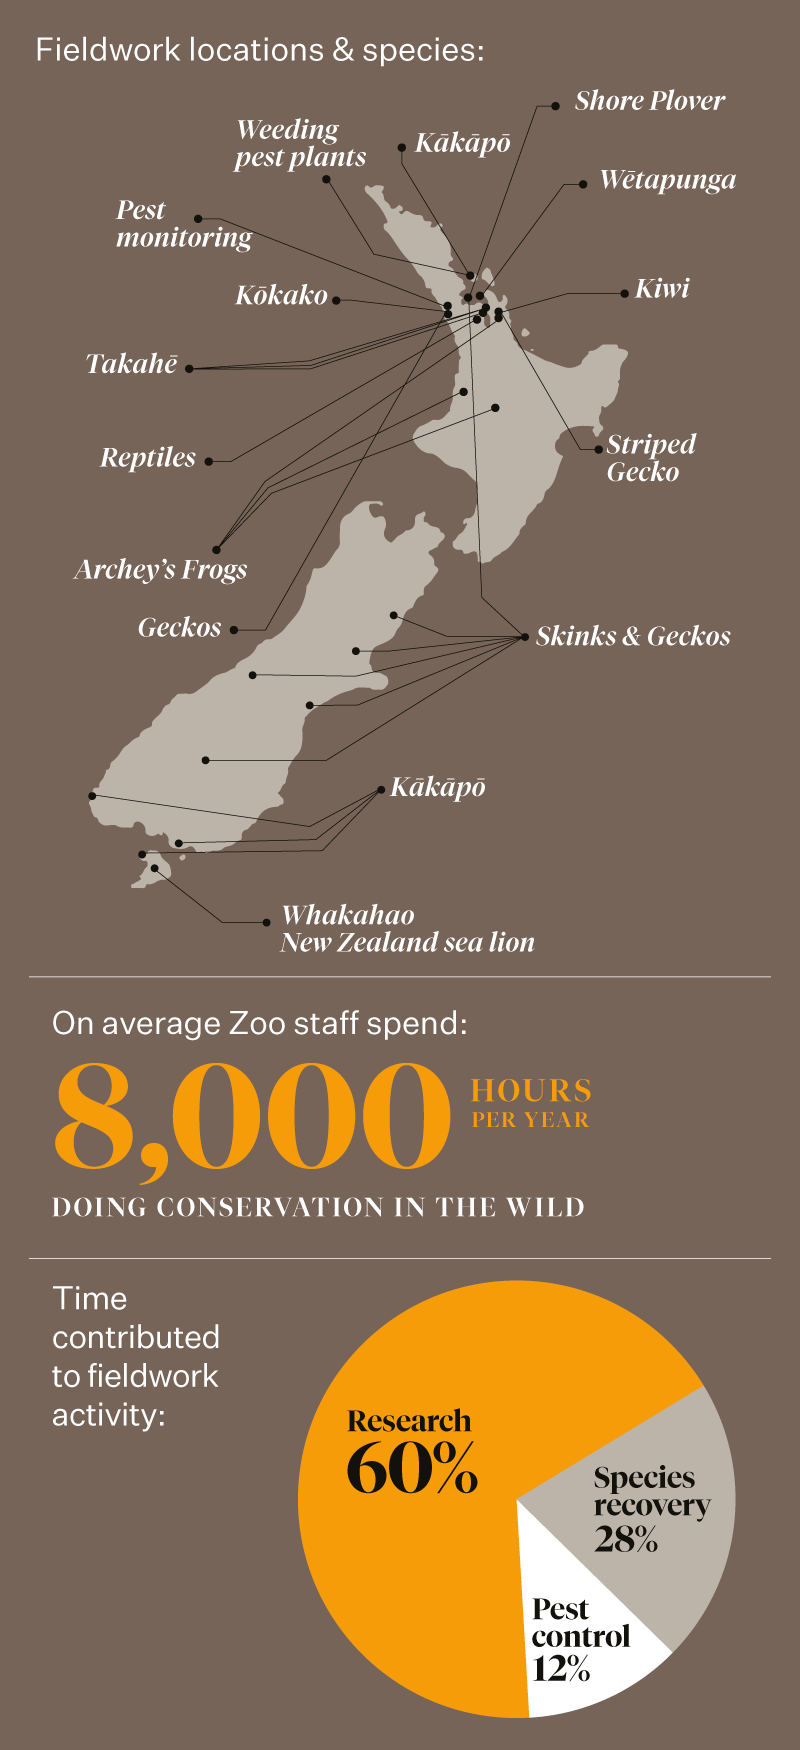 https://rfacdn.nz/zoo/assets/media/azoo-wildwork-centre-infograph-web-1.png